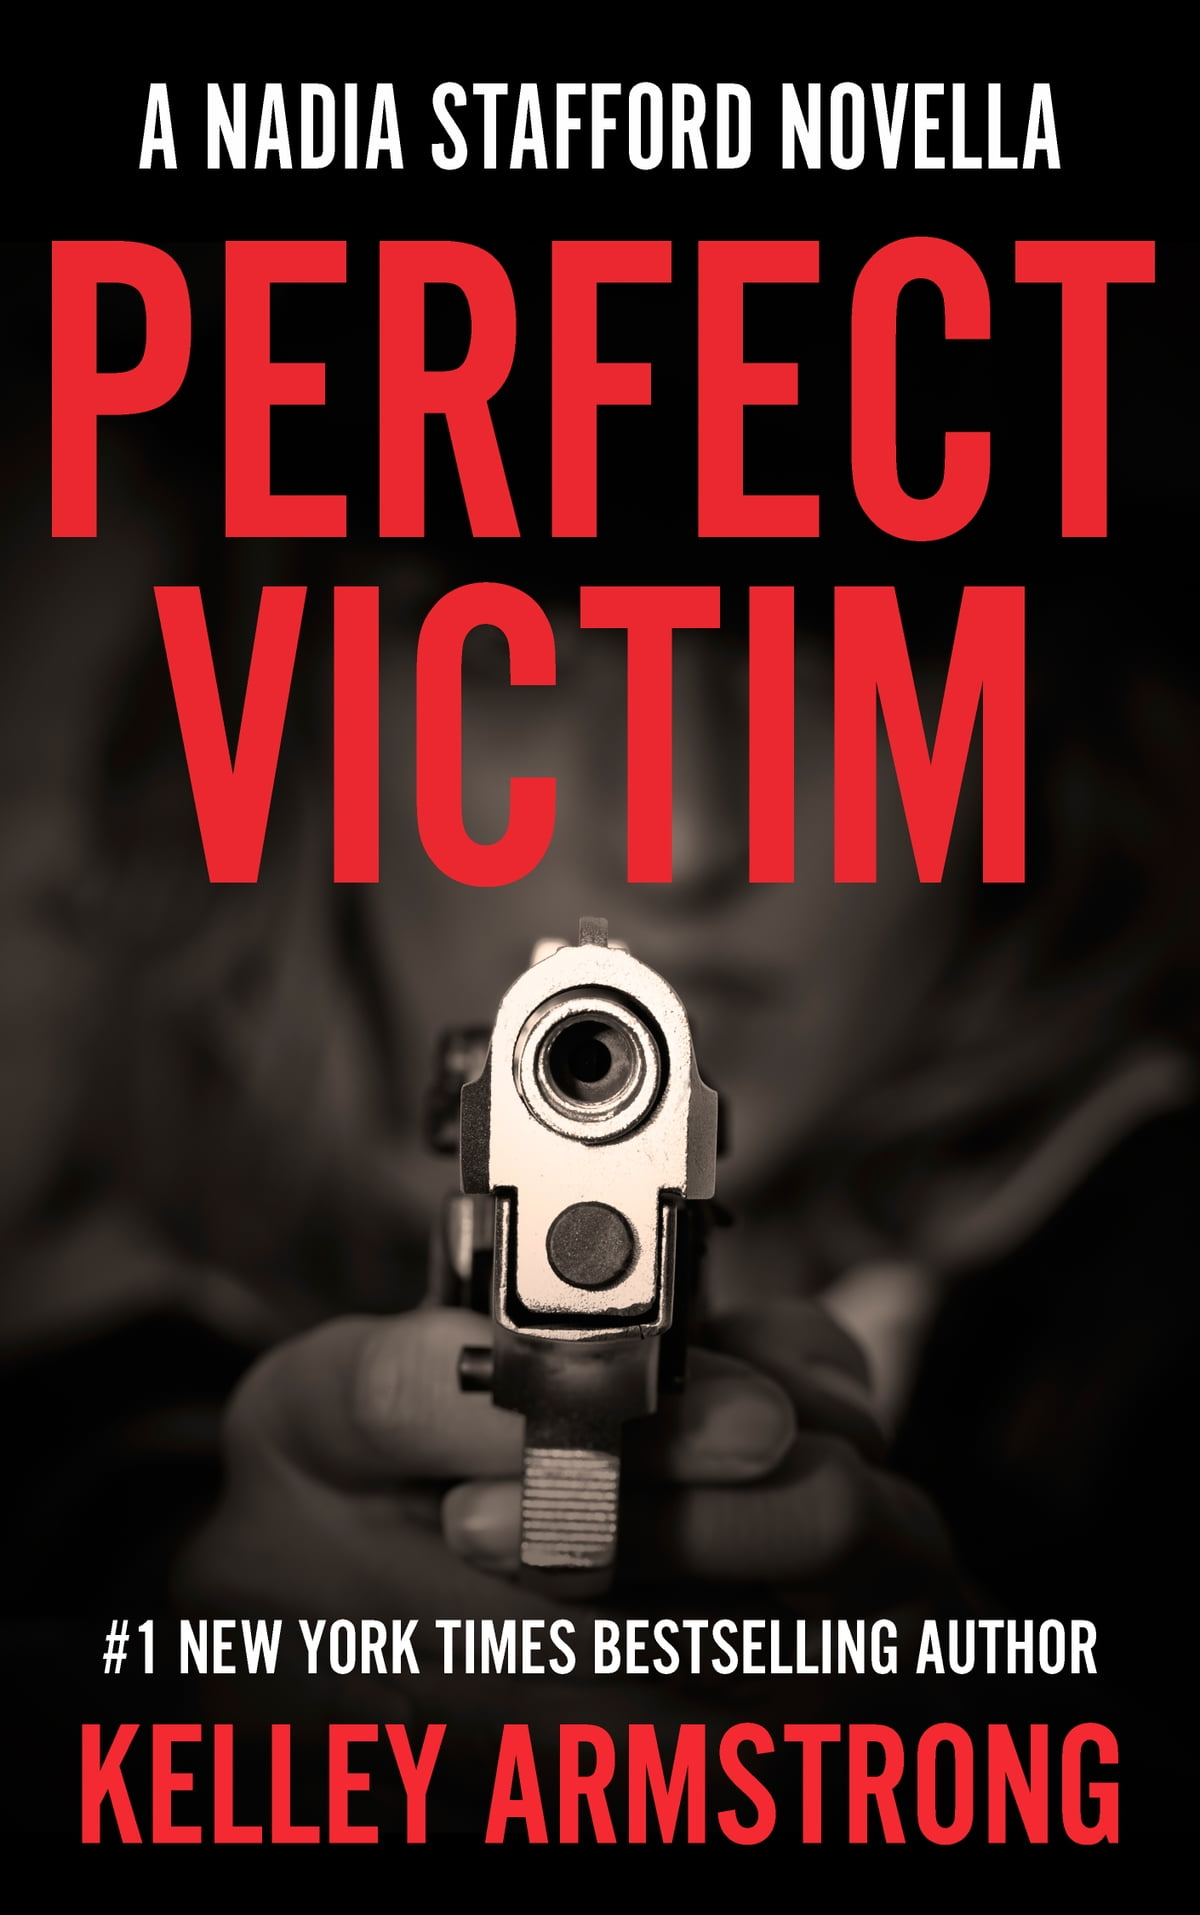 Atoning ebook by kelley armstrong 9781596067295 rakuten kobo perfect victim a nadia stafford novella ebook by kelley armstrong fandeluxe Document